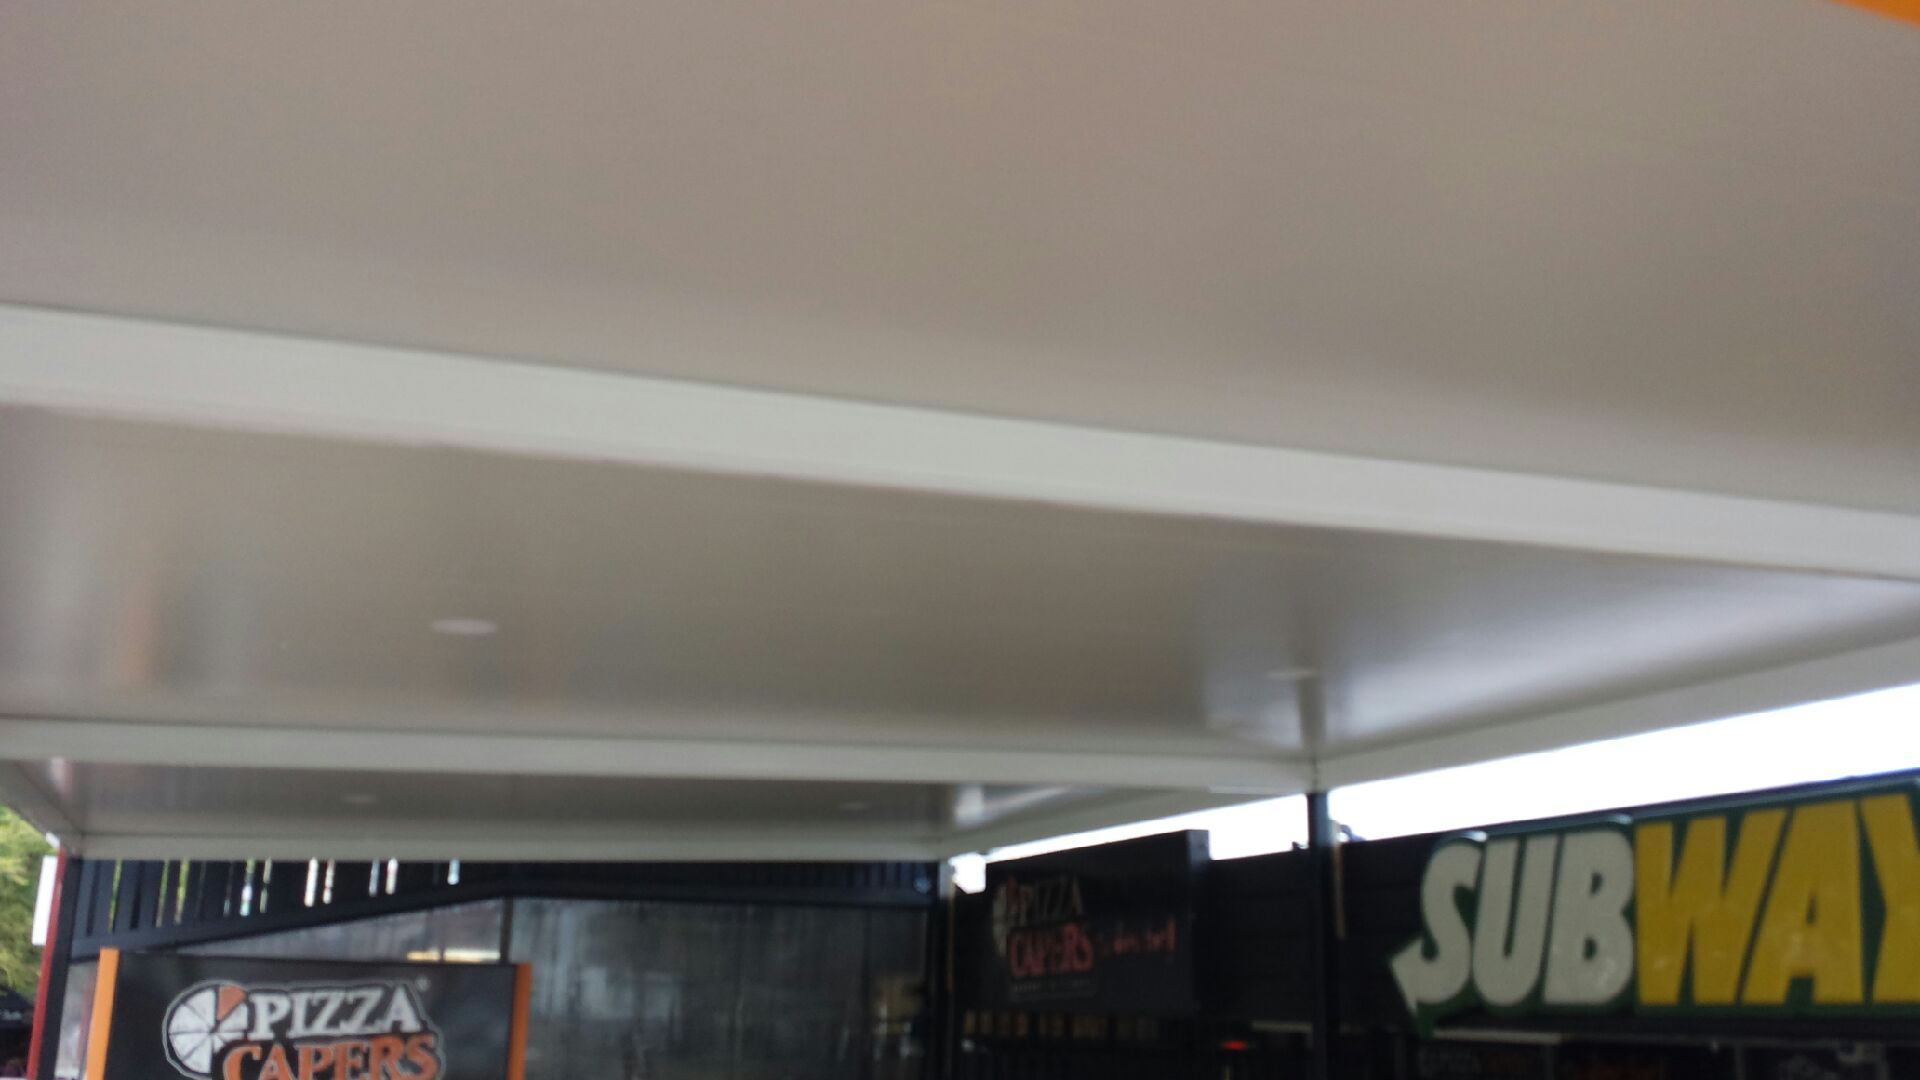 LED insulated lights in patio brisbane suburbs